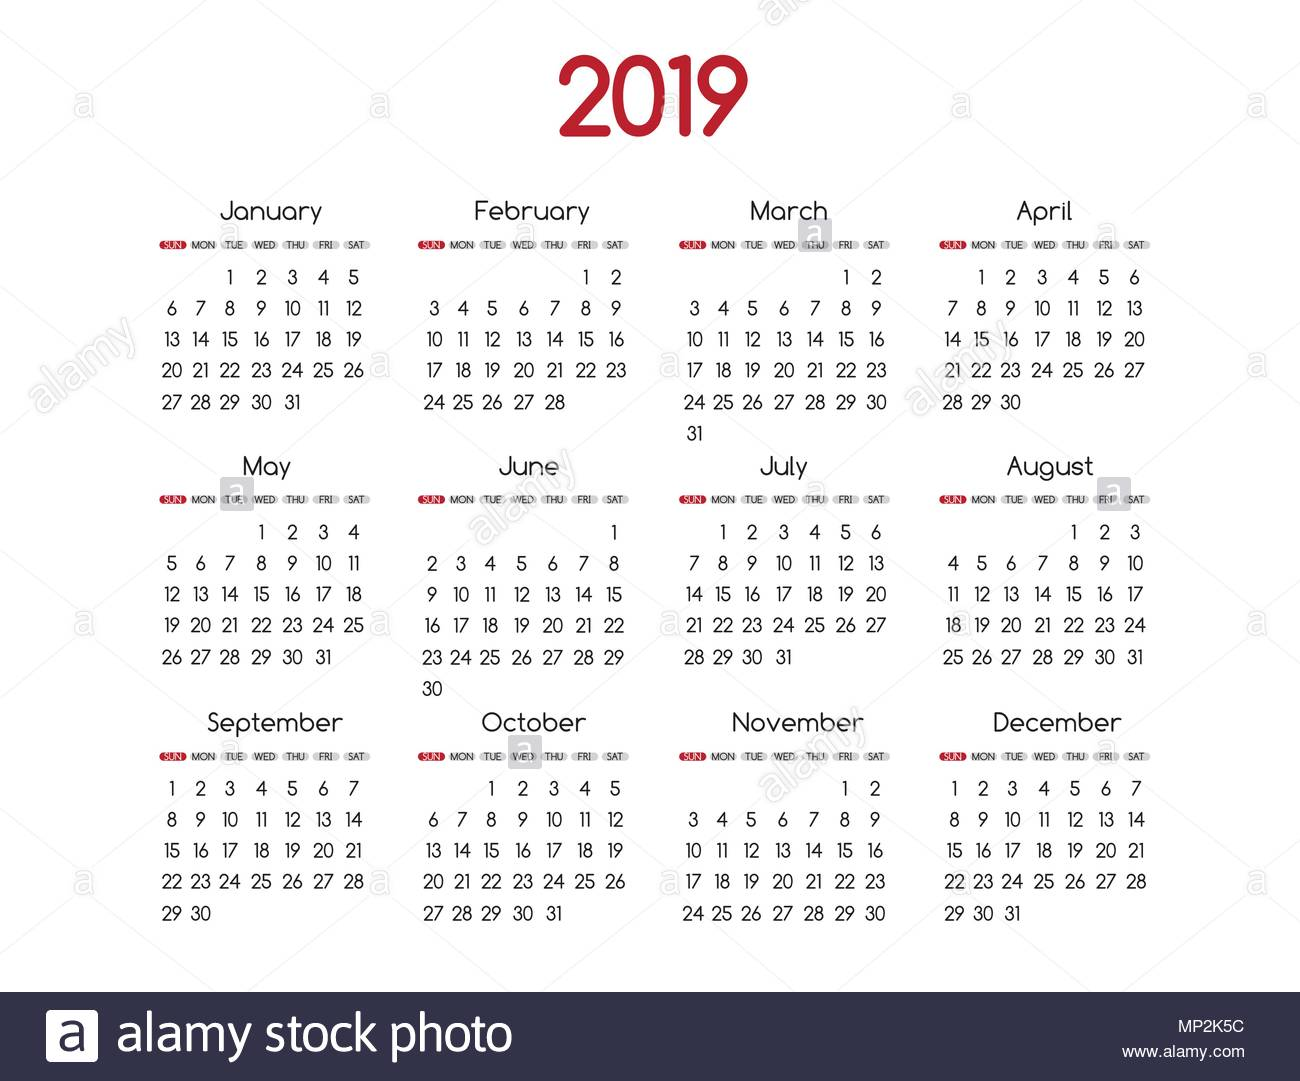 3 Year Calendar 2019 To 2021 With Simple Stock Photos